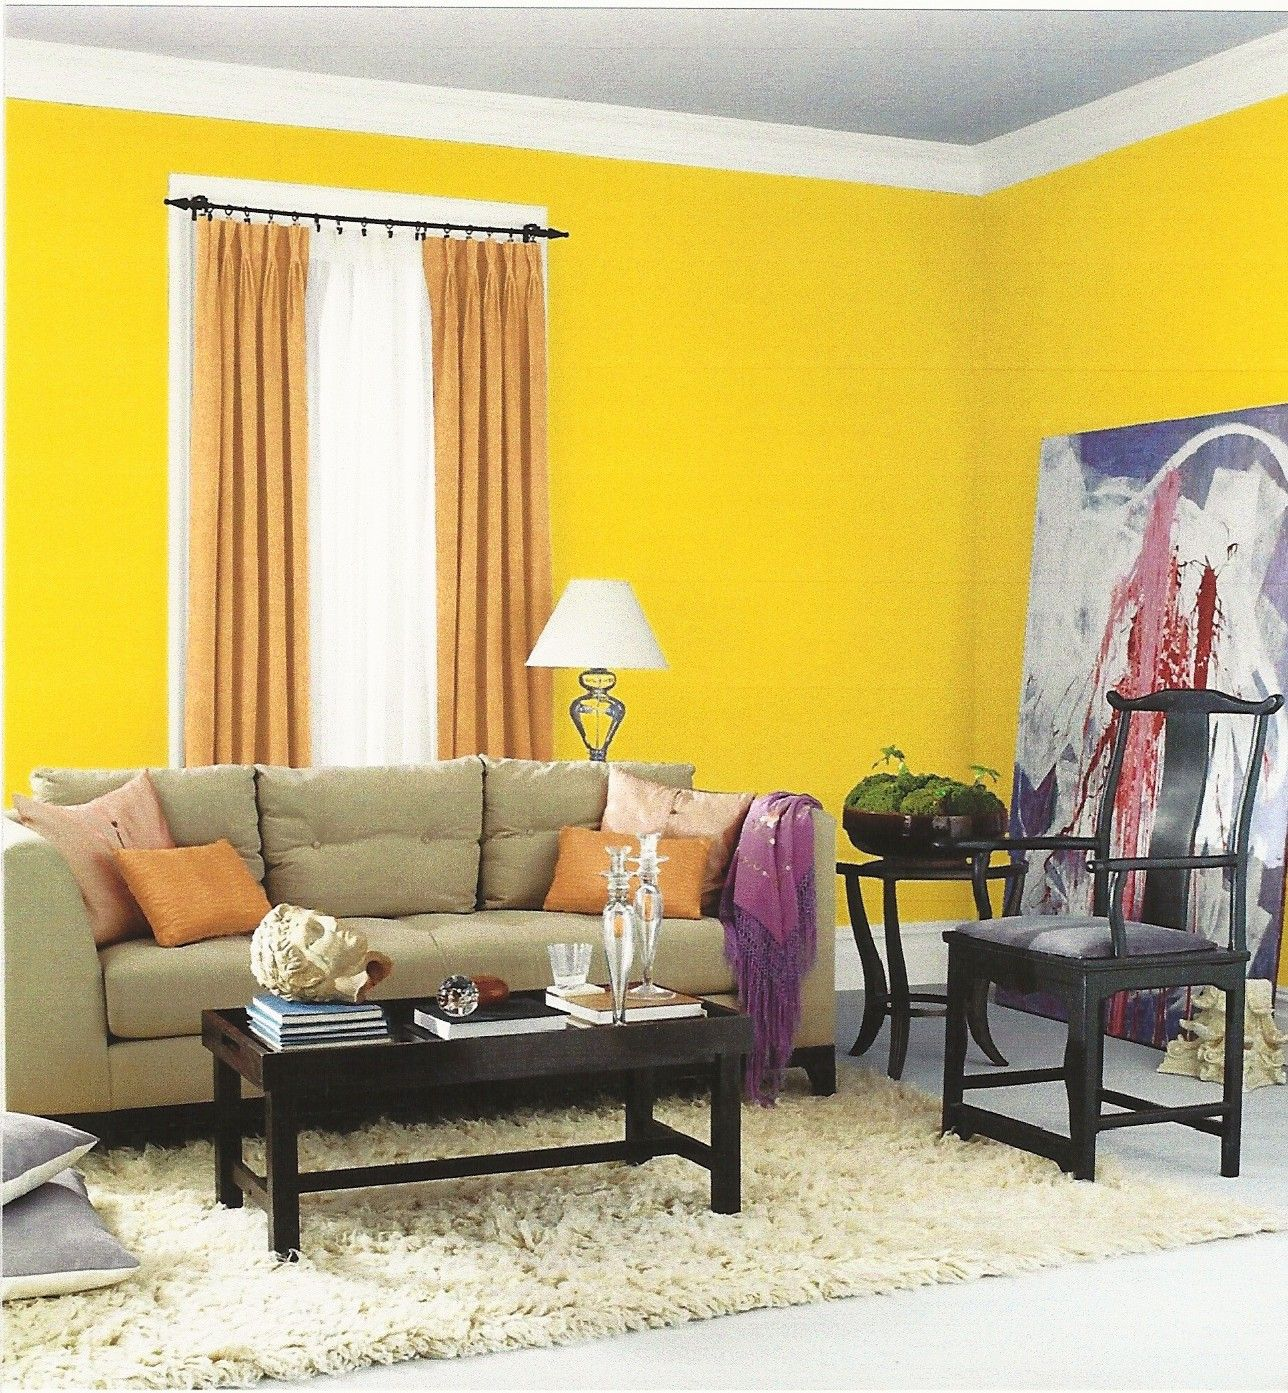 Yellow Living Room Decor The Beginners Guide To Color Psychology For Interior Design